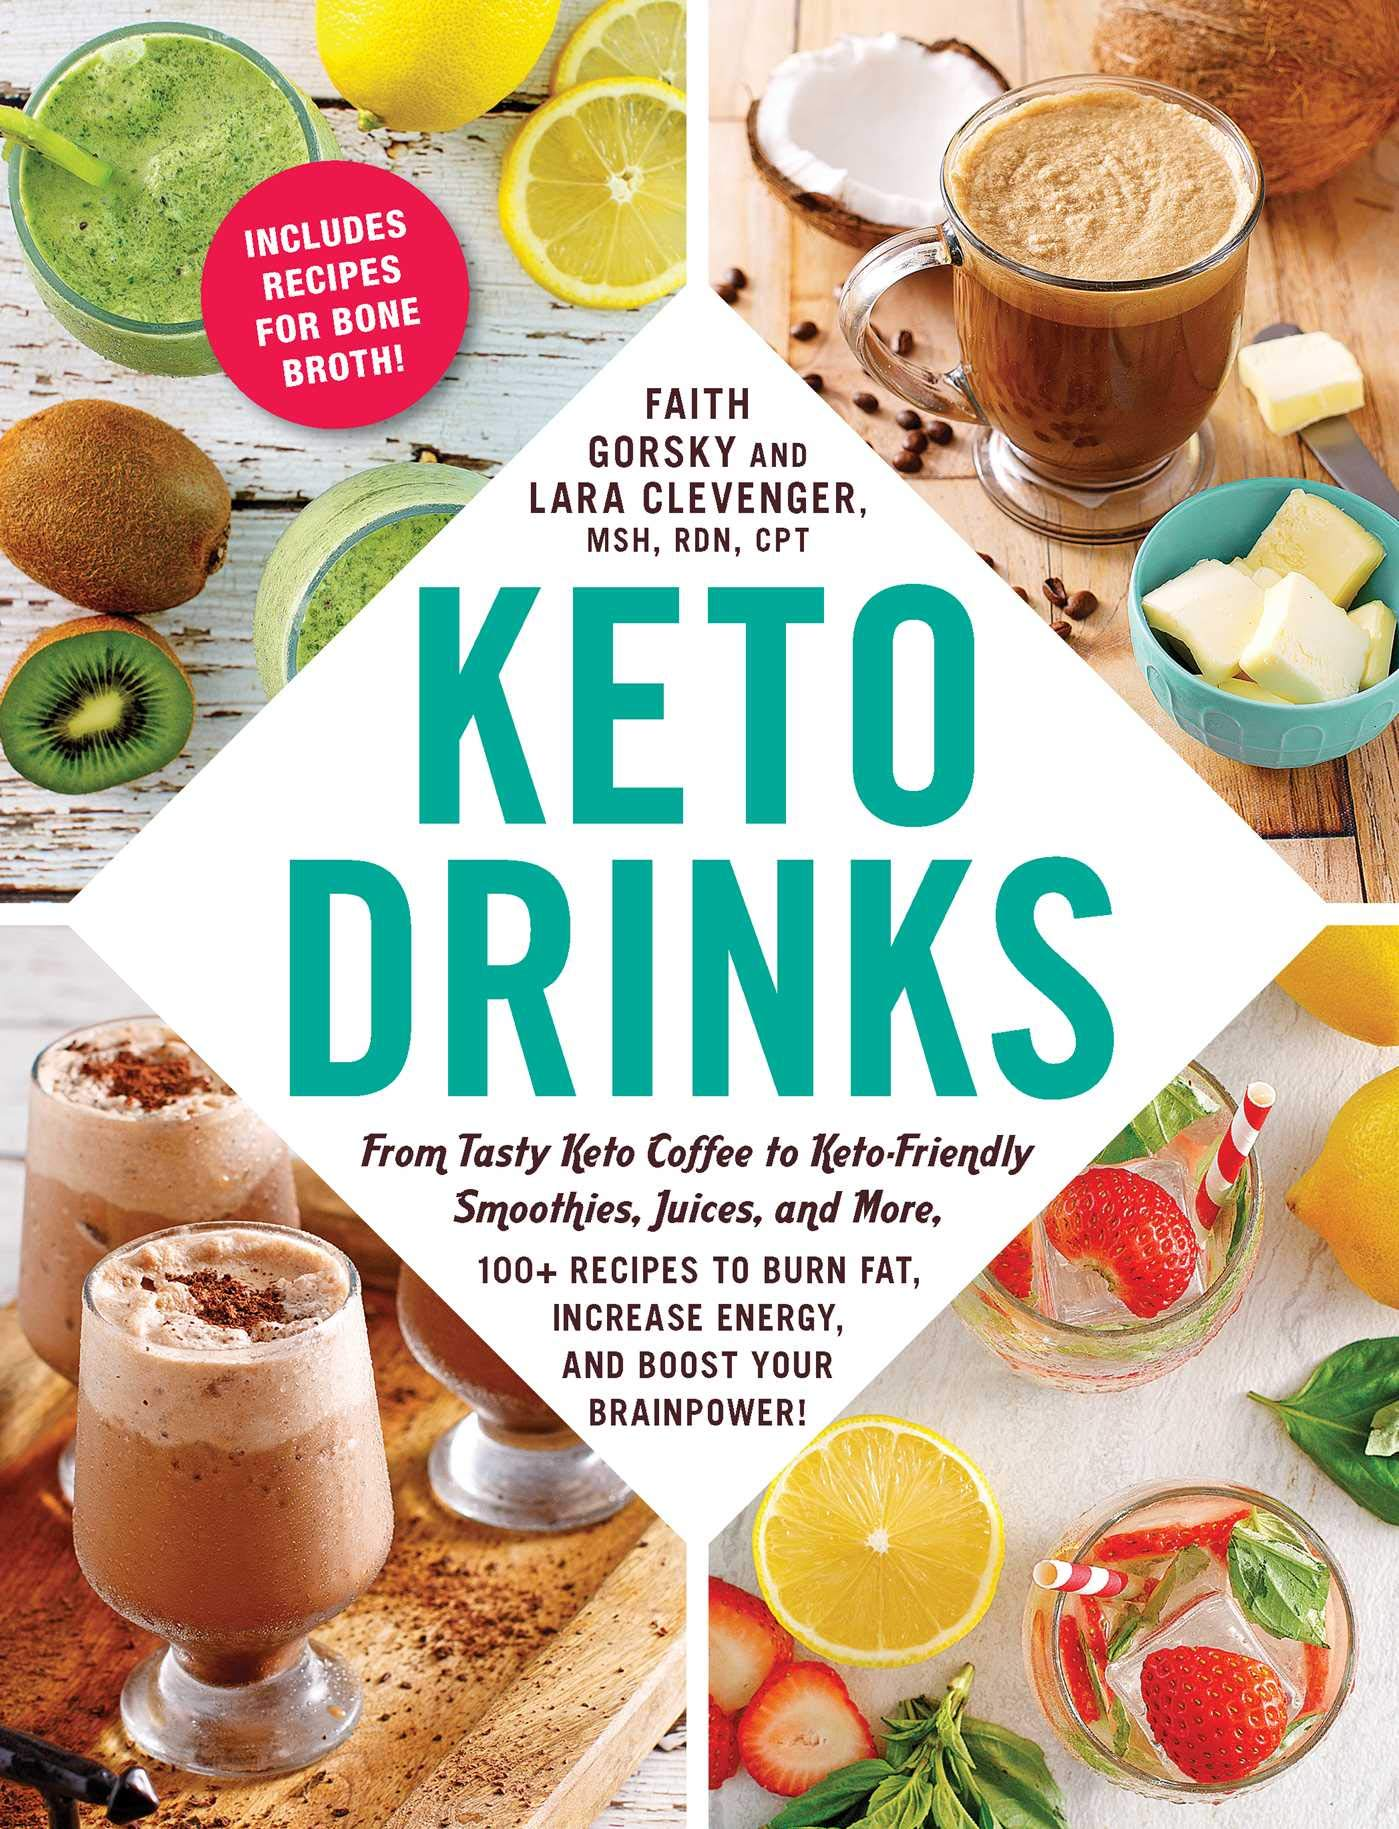 Keto Drinks: From Tasty Keto Coffee to Keto-Friendly Smoothies, Juices, and More, 100+ Recipes to Burn Fat, Increase Energy, and Boost Your Brainpower! 1